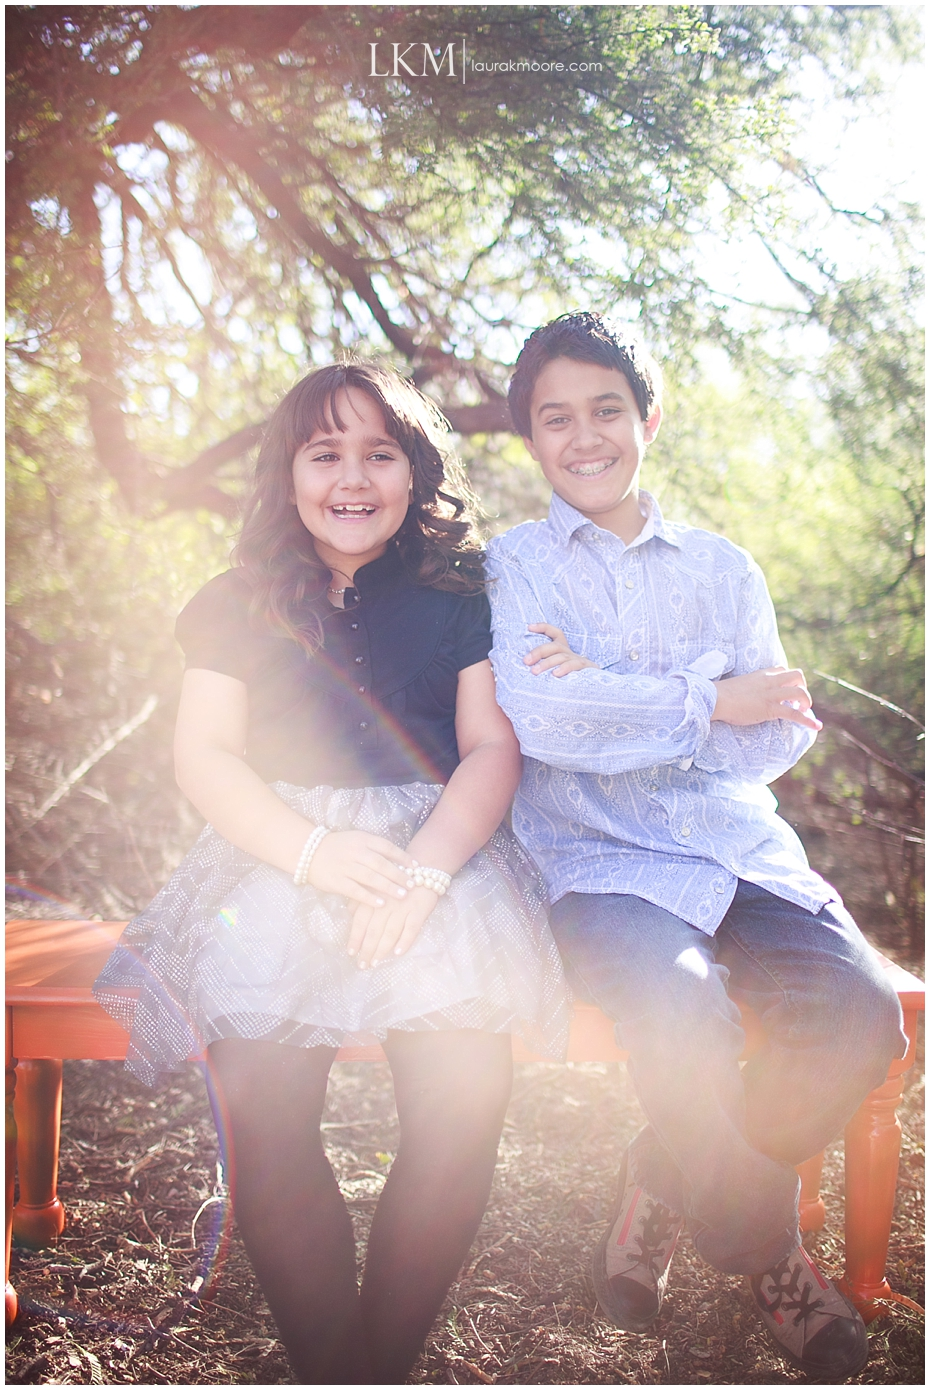 Tucson-Family-Portrait-Photographer-Laura-K-Moore_0016